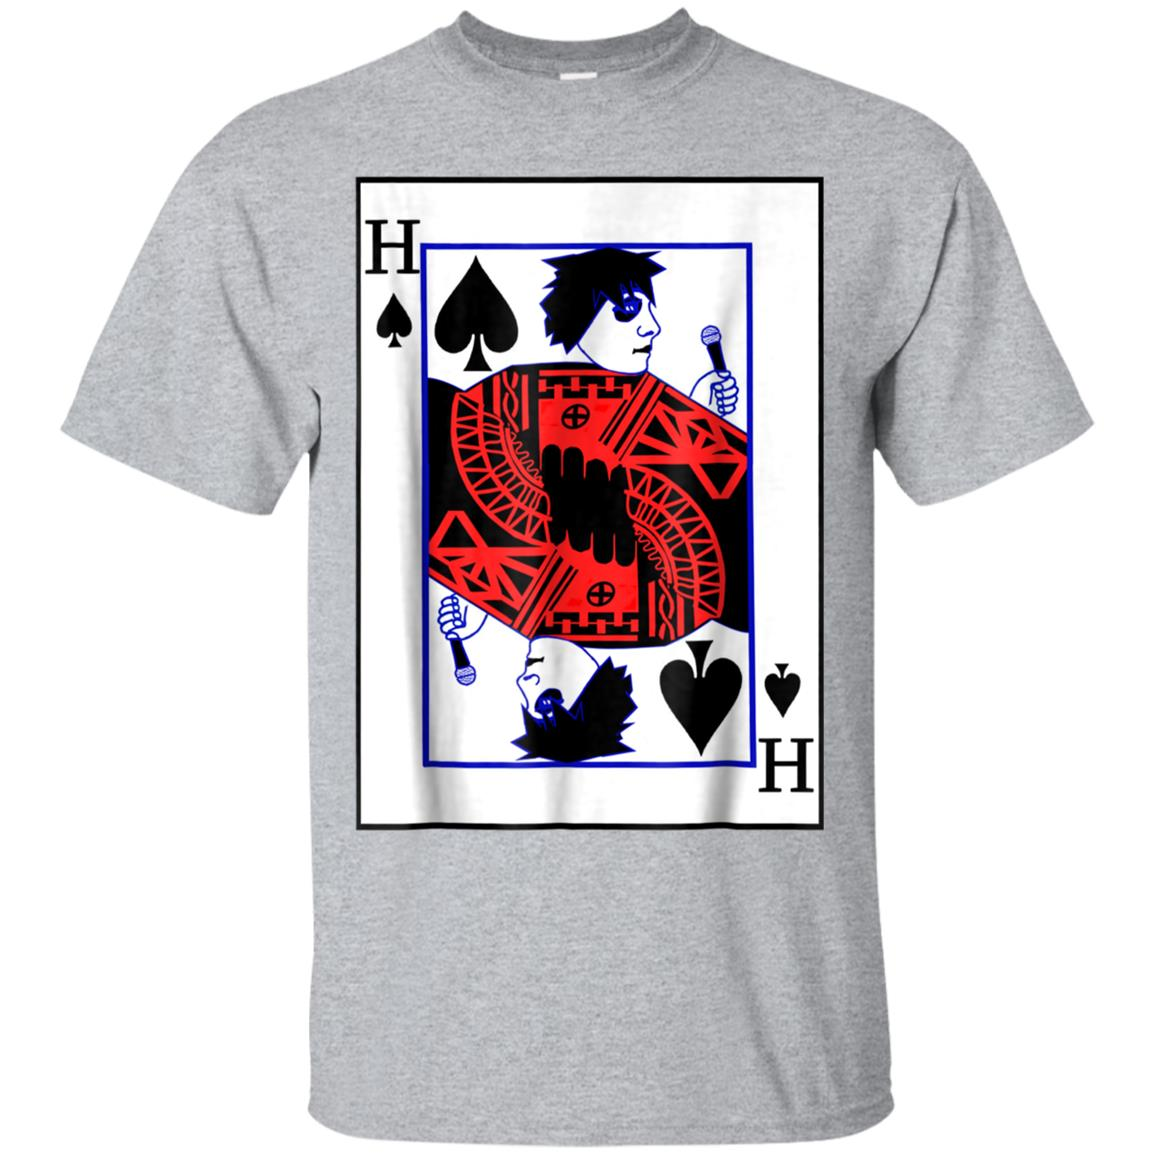 Hex Of Spades - Oliver Graves Shirt 99promocode